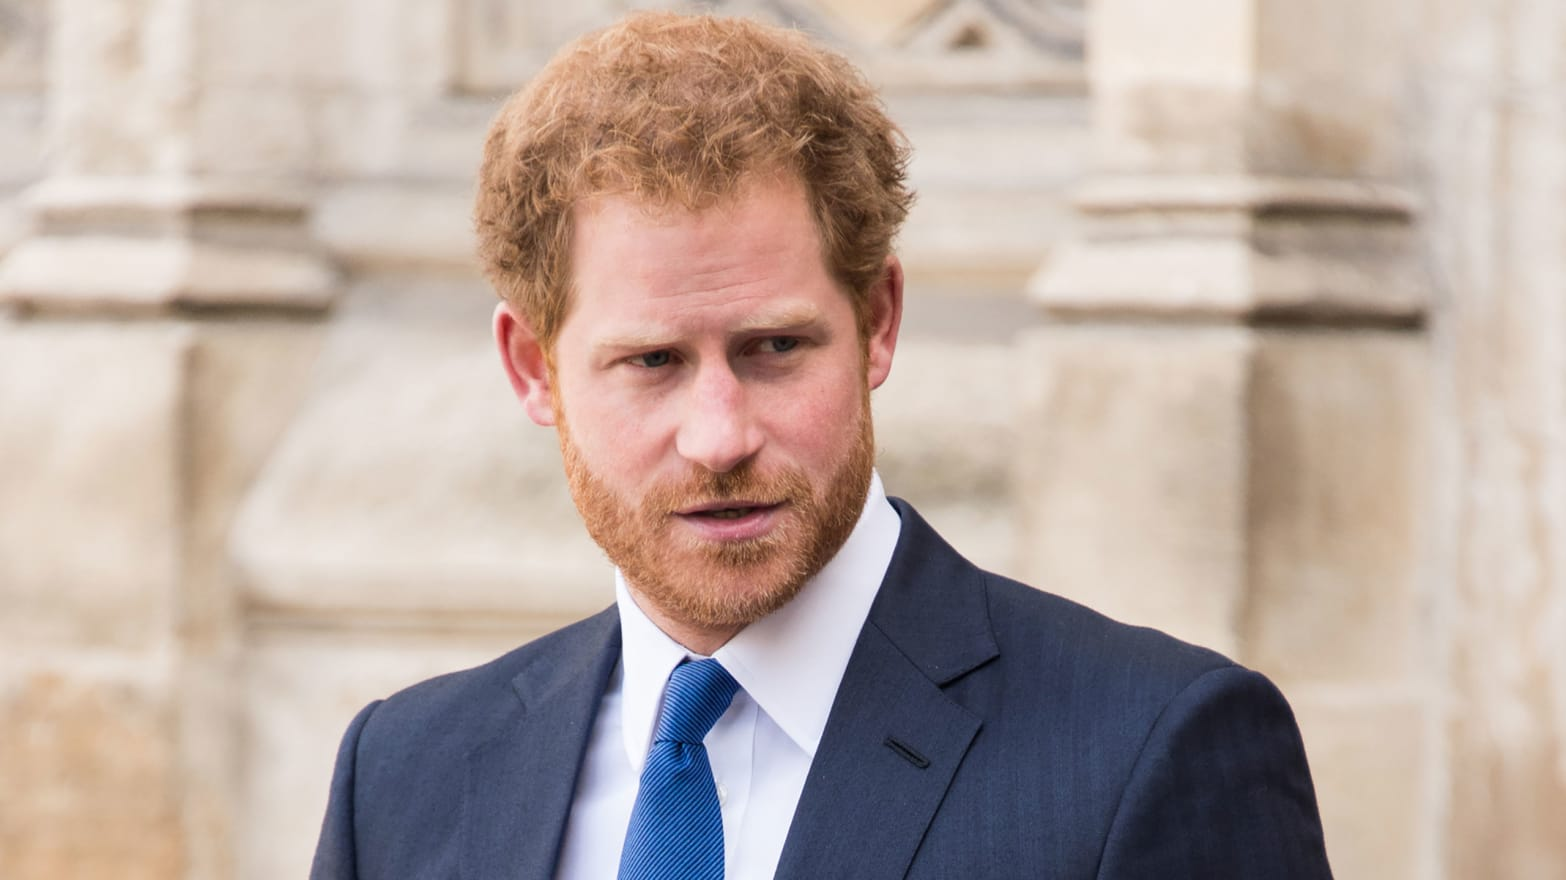 170416-sykes-prince-harry-tease_vs4wyy.jpg